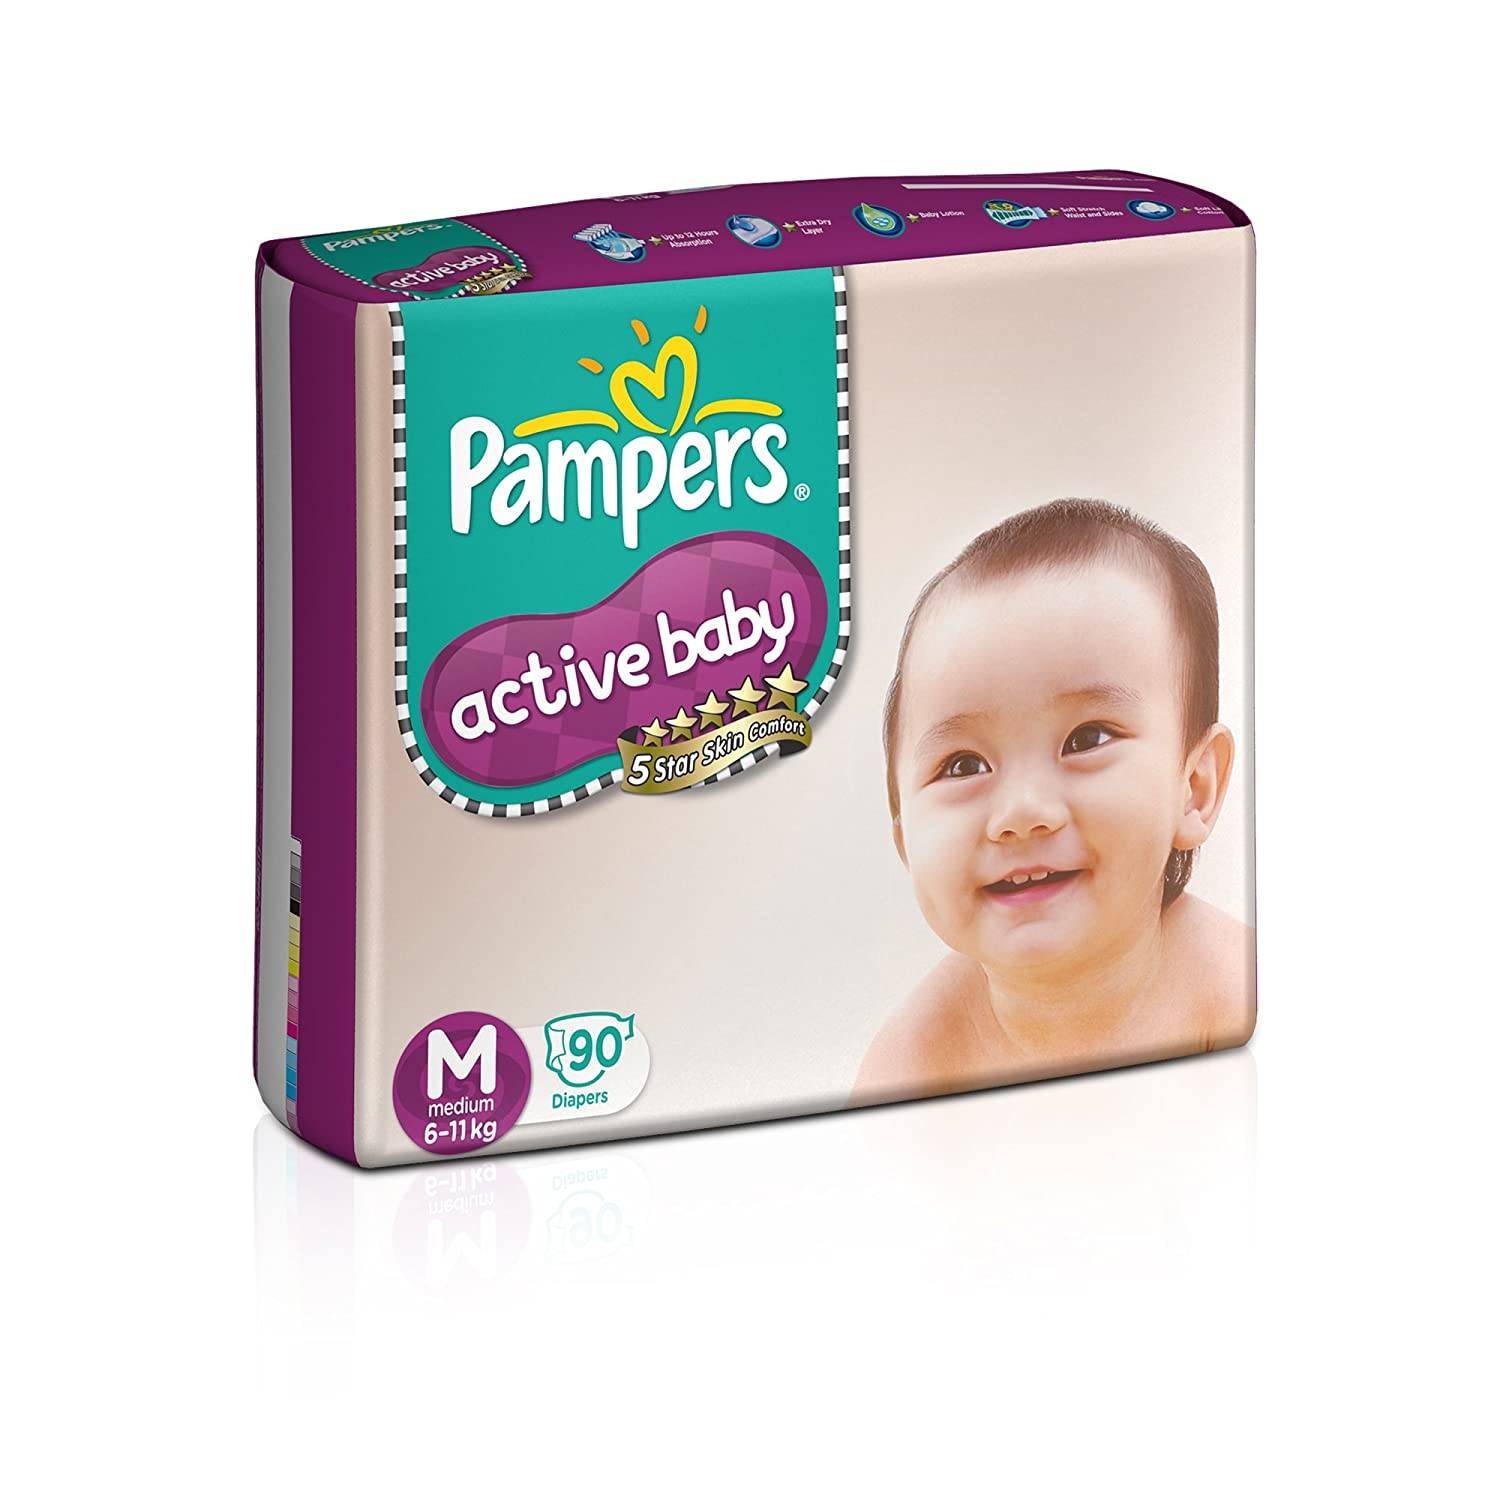 Pampers active baby medium size diapers 90 count amazon baby nvjuhfo Image collections